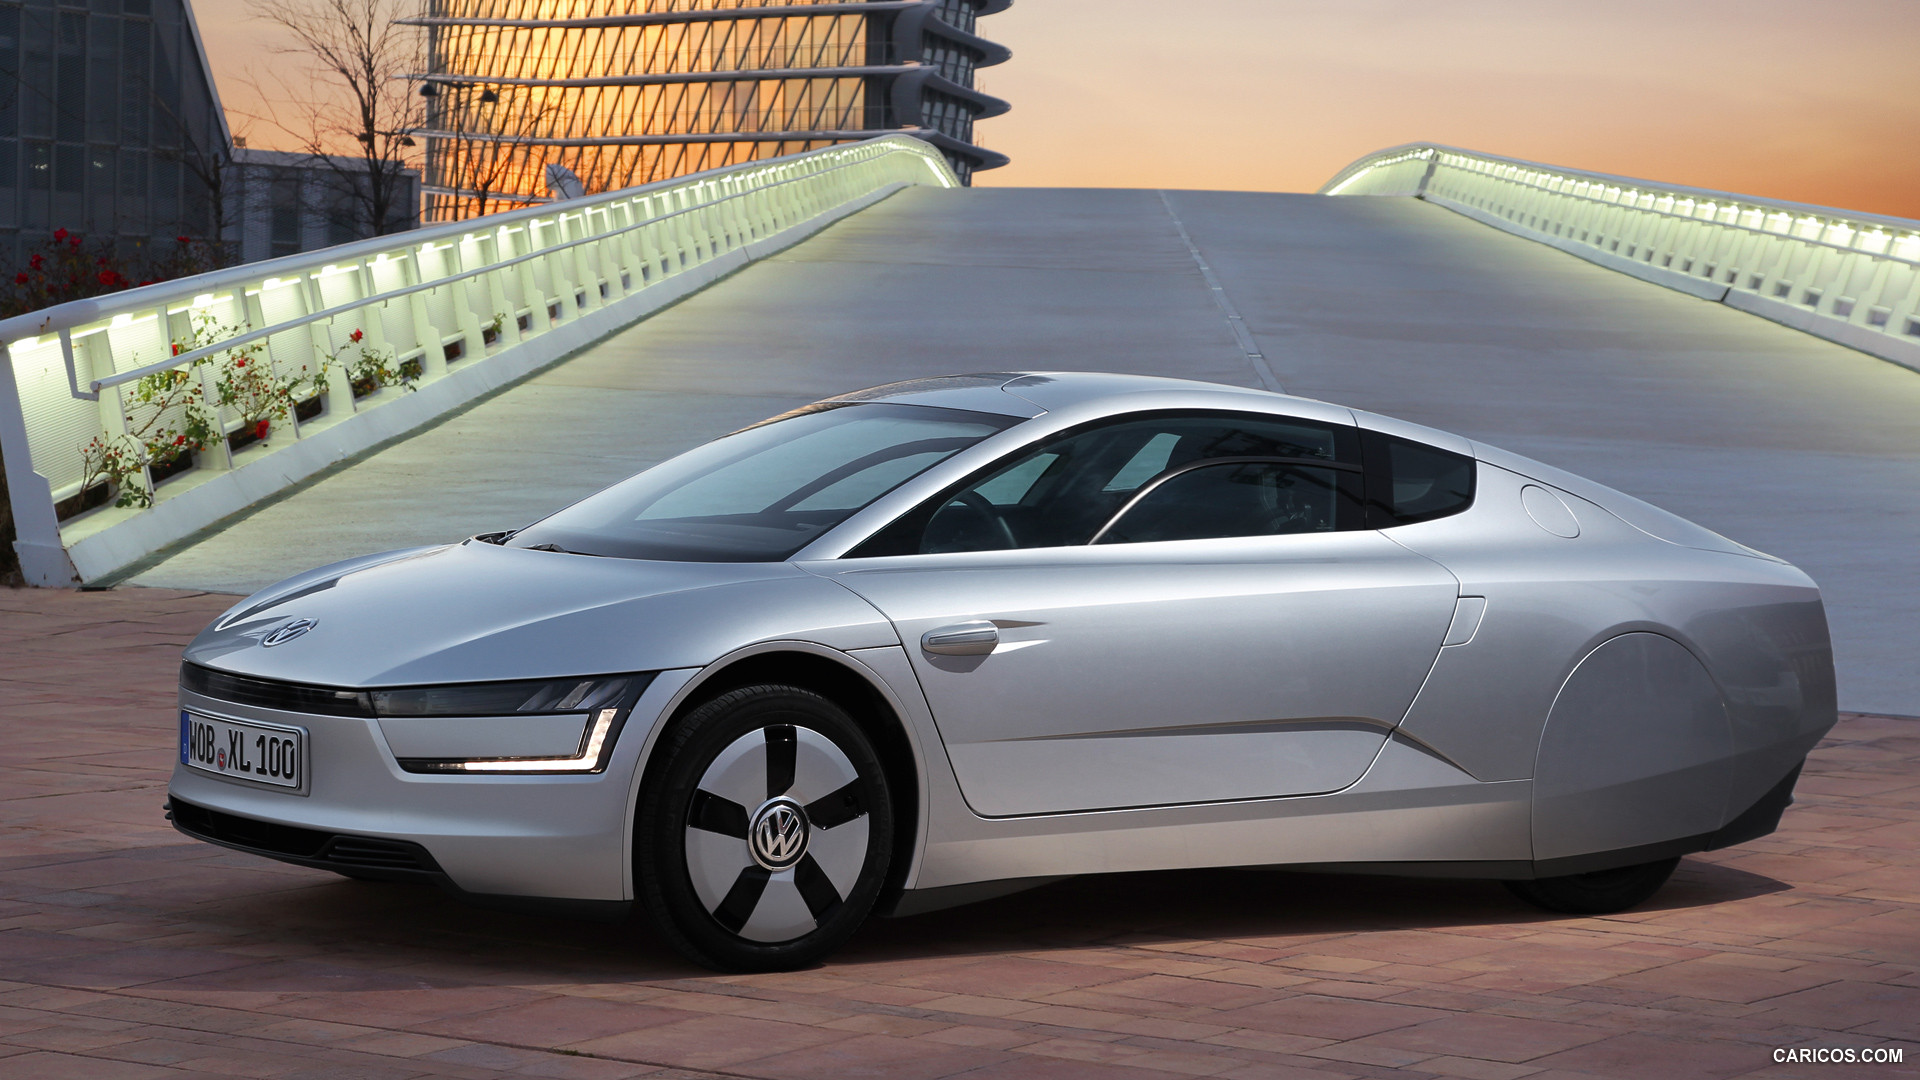 Volkswagen XL1 photo 134244